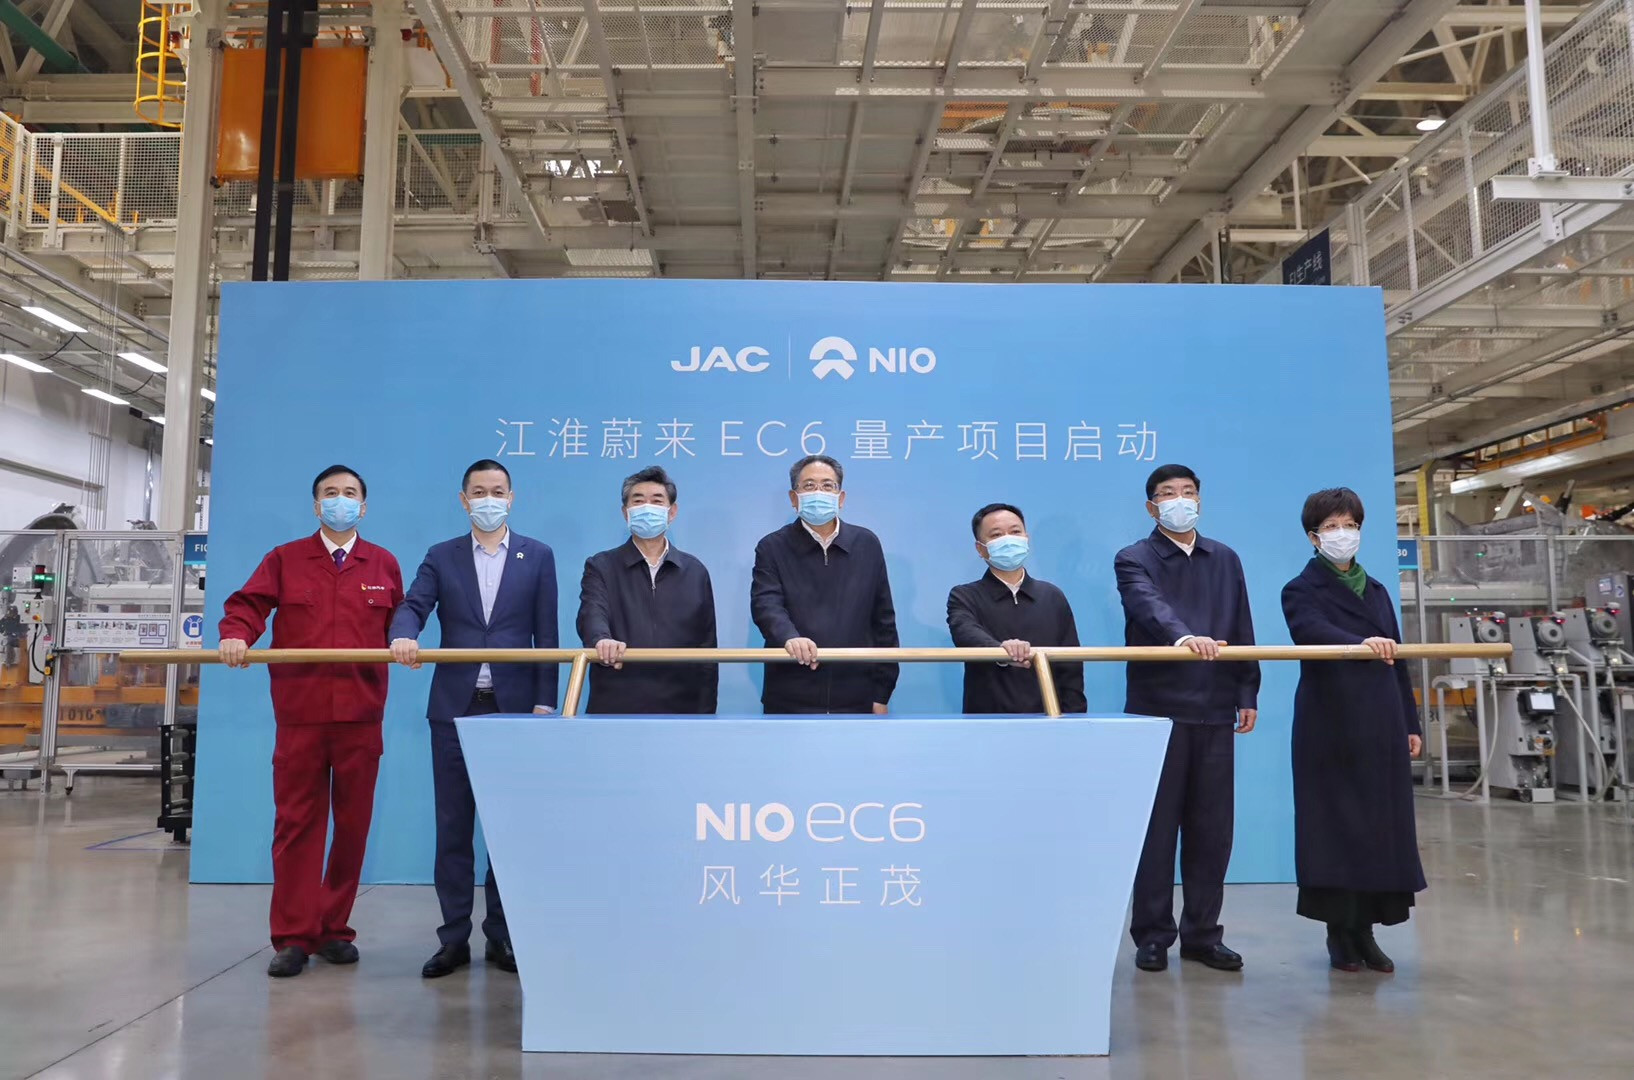 technode.com-chinas-nio-reached-on-strategic-investment-plan-with-hefei-government-img-6227 Nio reaches strategic investment deal with Hefei government Nio News New Energy Vehicles Mobility